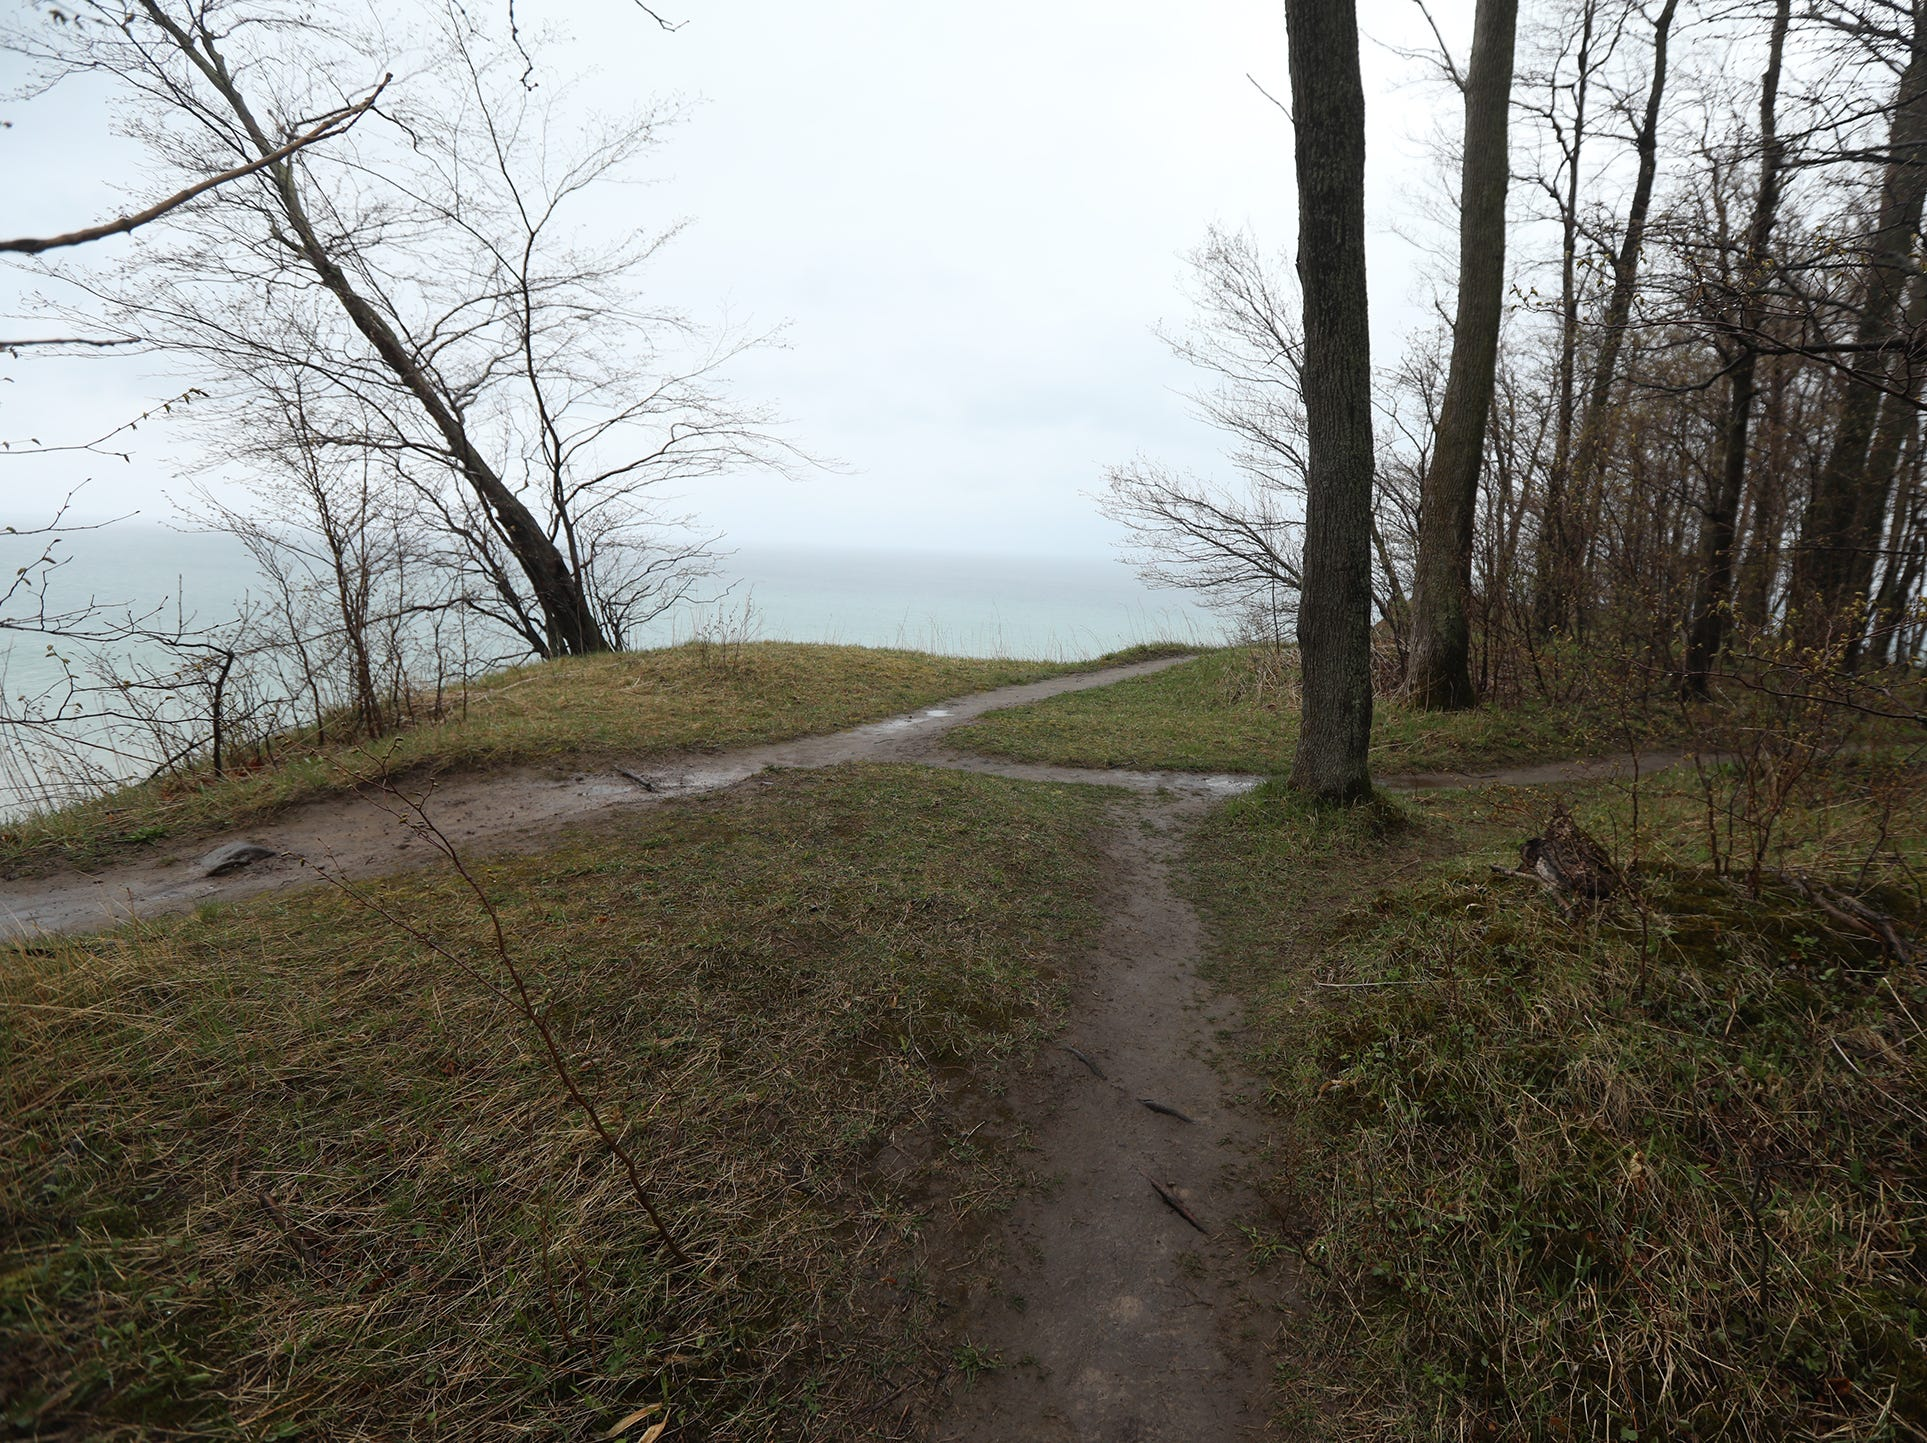 An alternate, safer trail can give hikers a view of the bluffs and Lake Ontario.